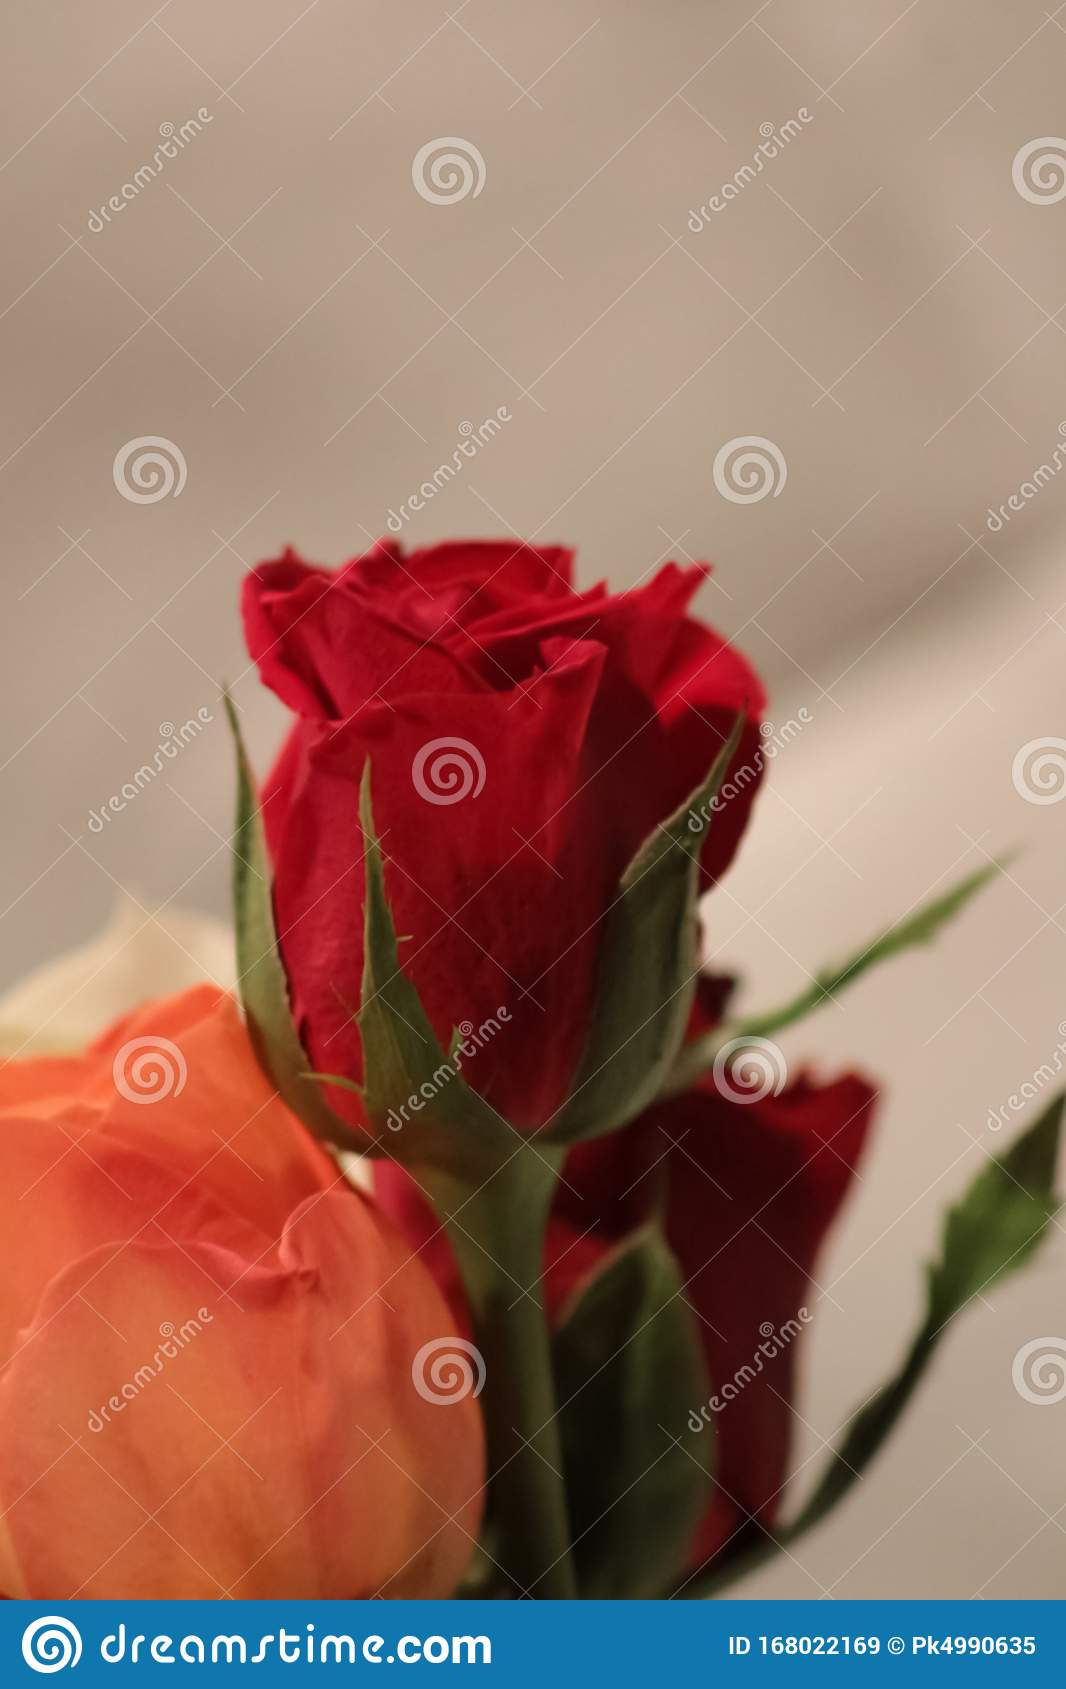 Red Rose Flower Beautiful Wallpaper Stock Image Image Of Most